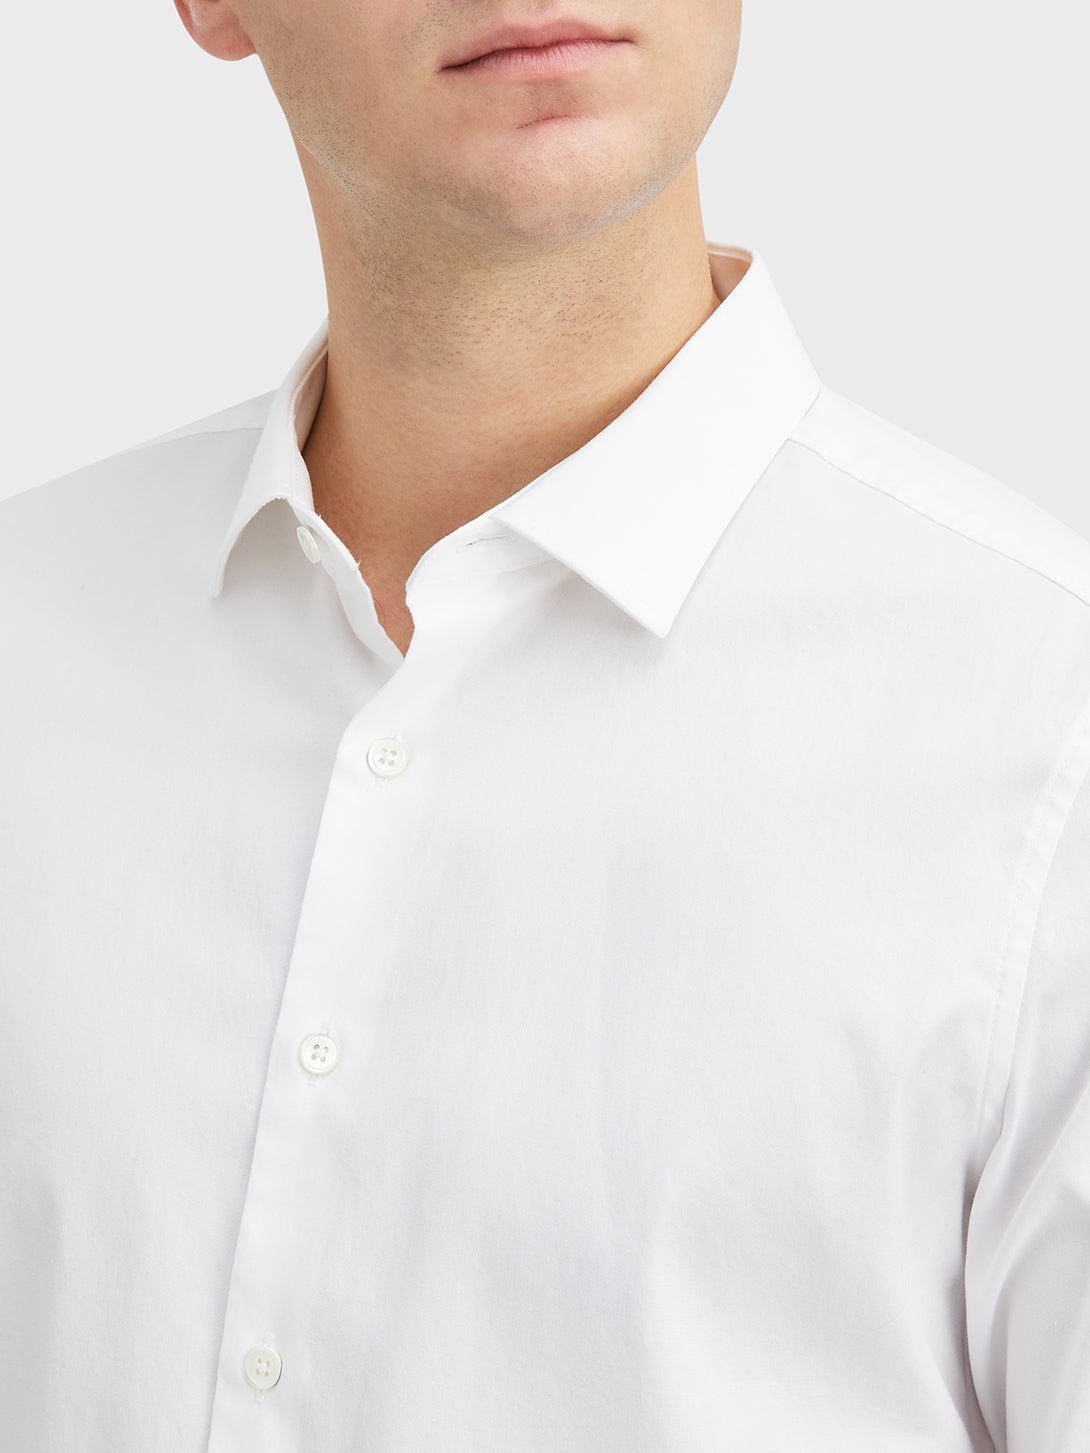 White Adrian Pinpoint Oxford Shirt Men's cotton shirts ONS Clothing